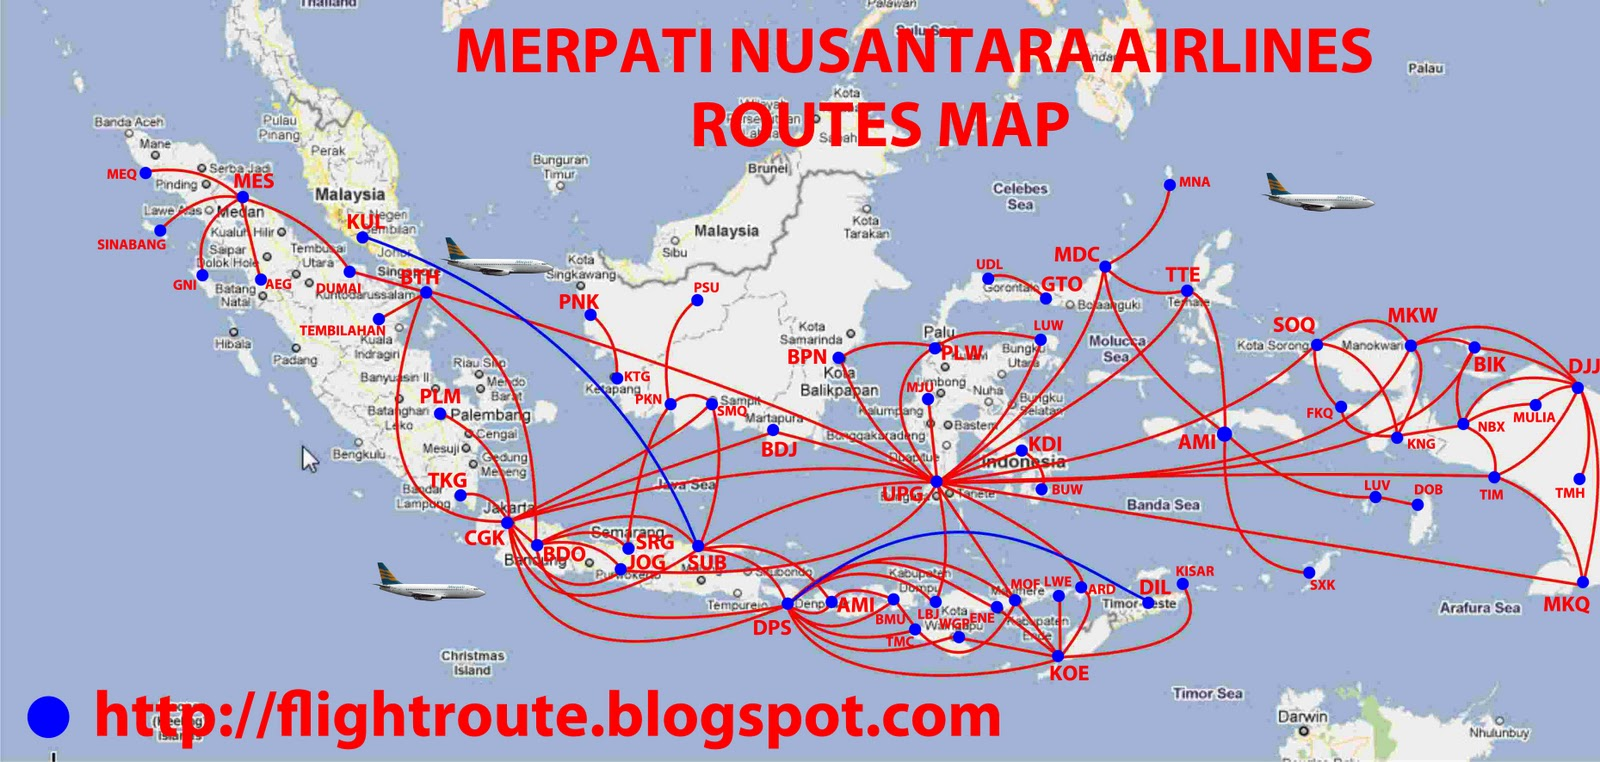 lan flight map with Merpati Airlines Routes Map on Use Point Of Sale To Get Cheaper International Tickets as well Hawaiian Airlines Routes Map also Latam Airlines Brasil Airbus A321 further Oregon Coast Road Trip also 747 89l.